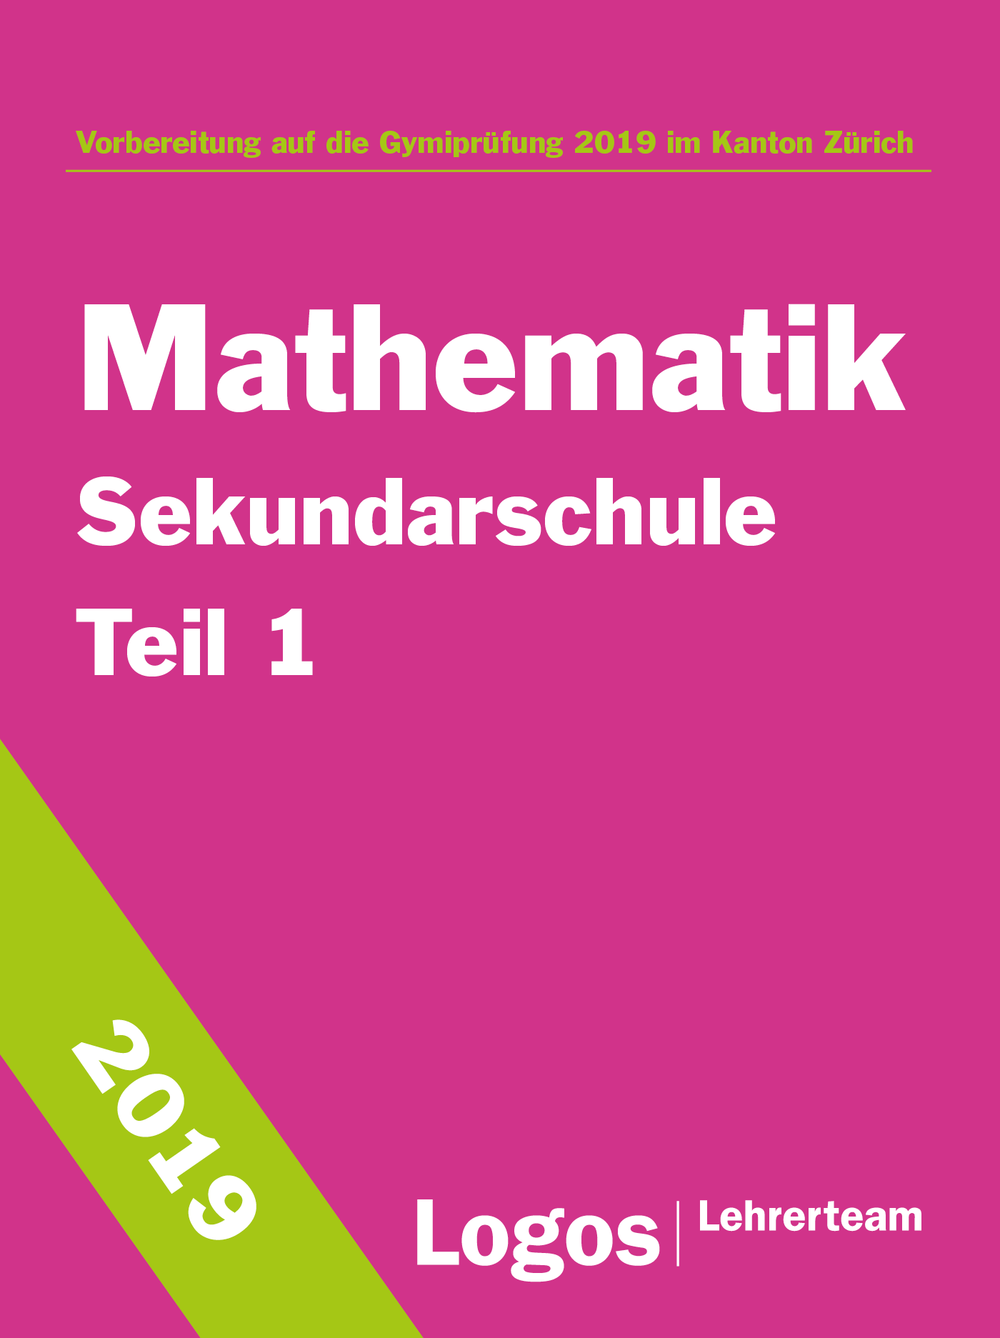 cover_sm1.png